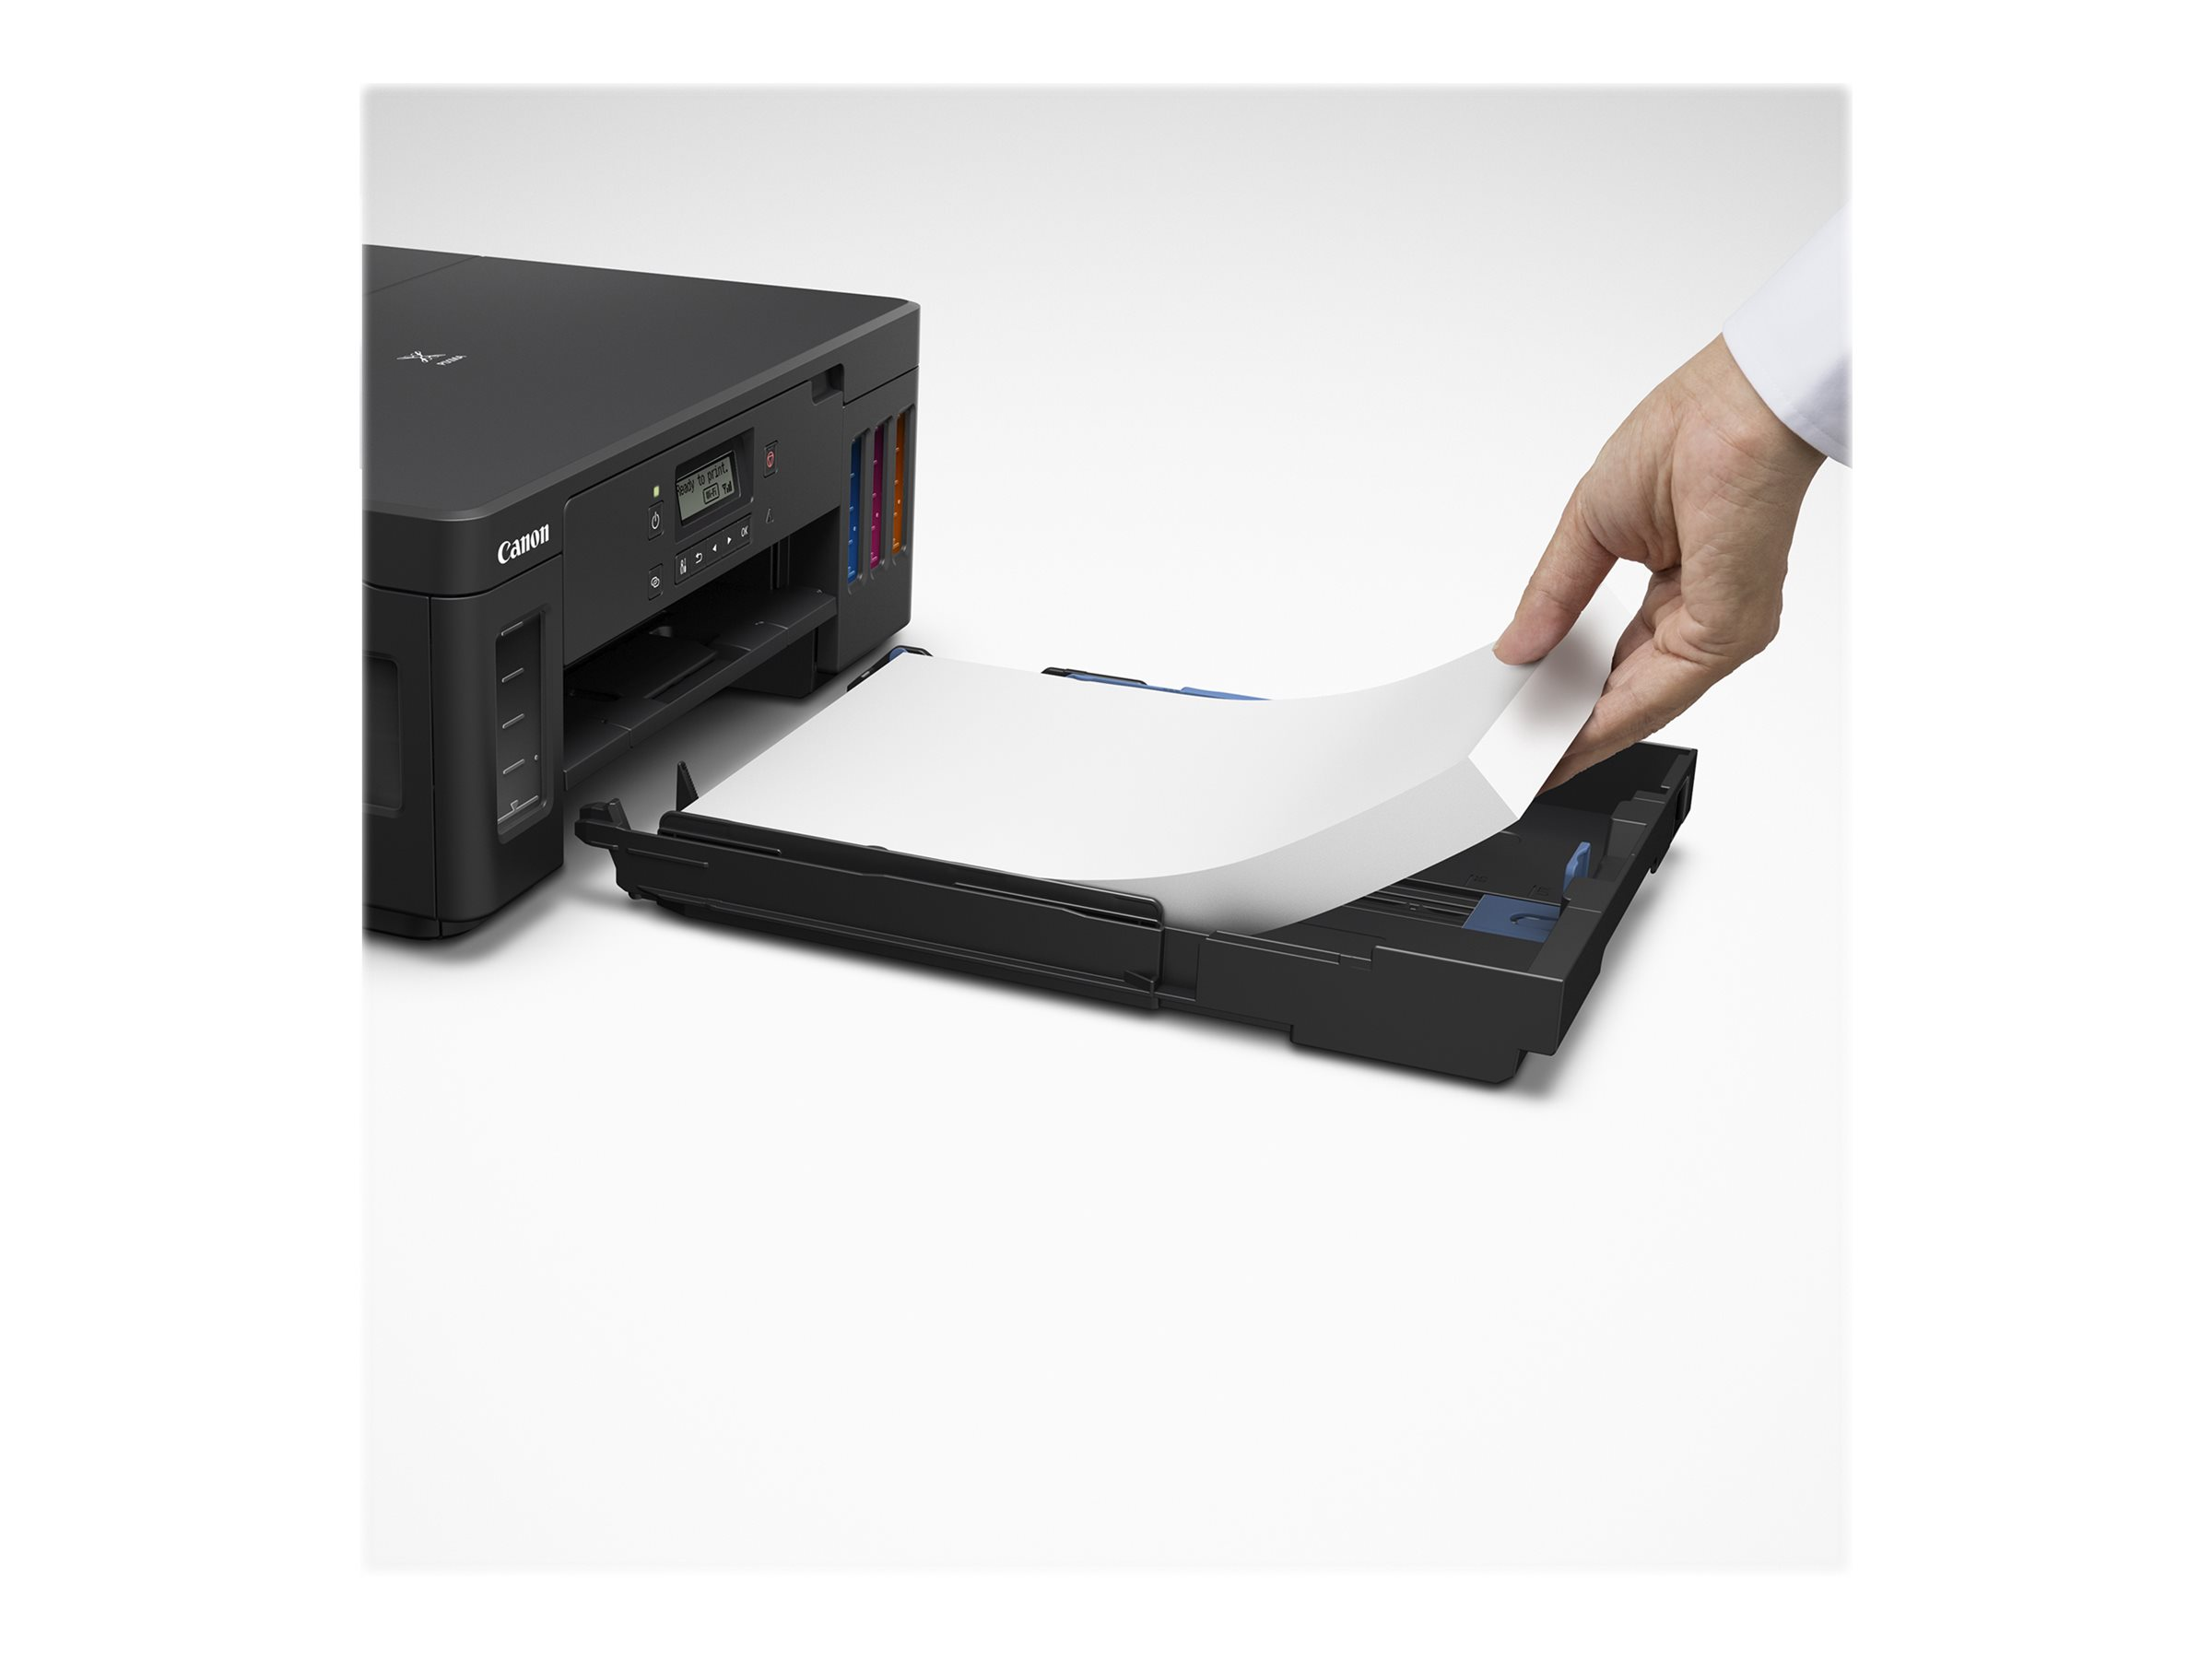 Canon PIXMA G5020 MegaTank - printer - color - ink-jet